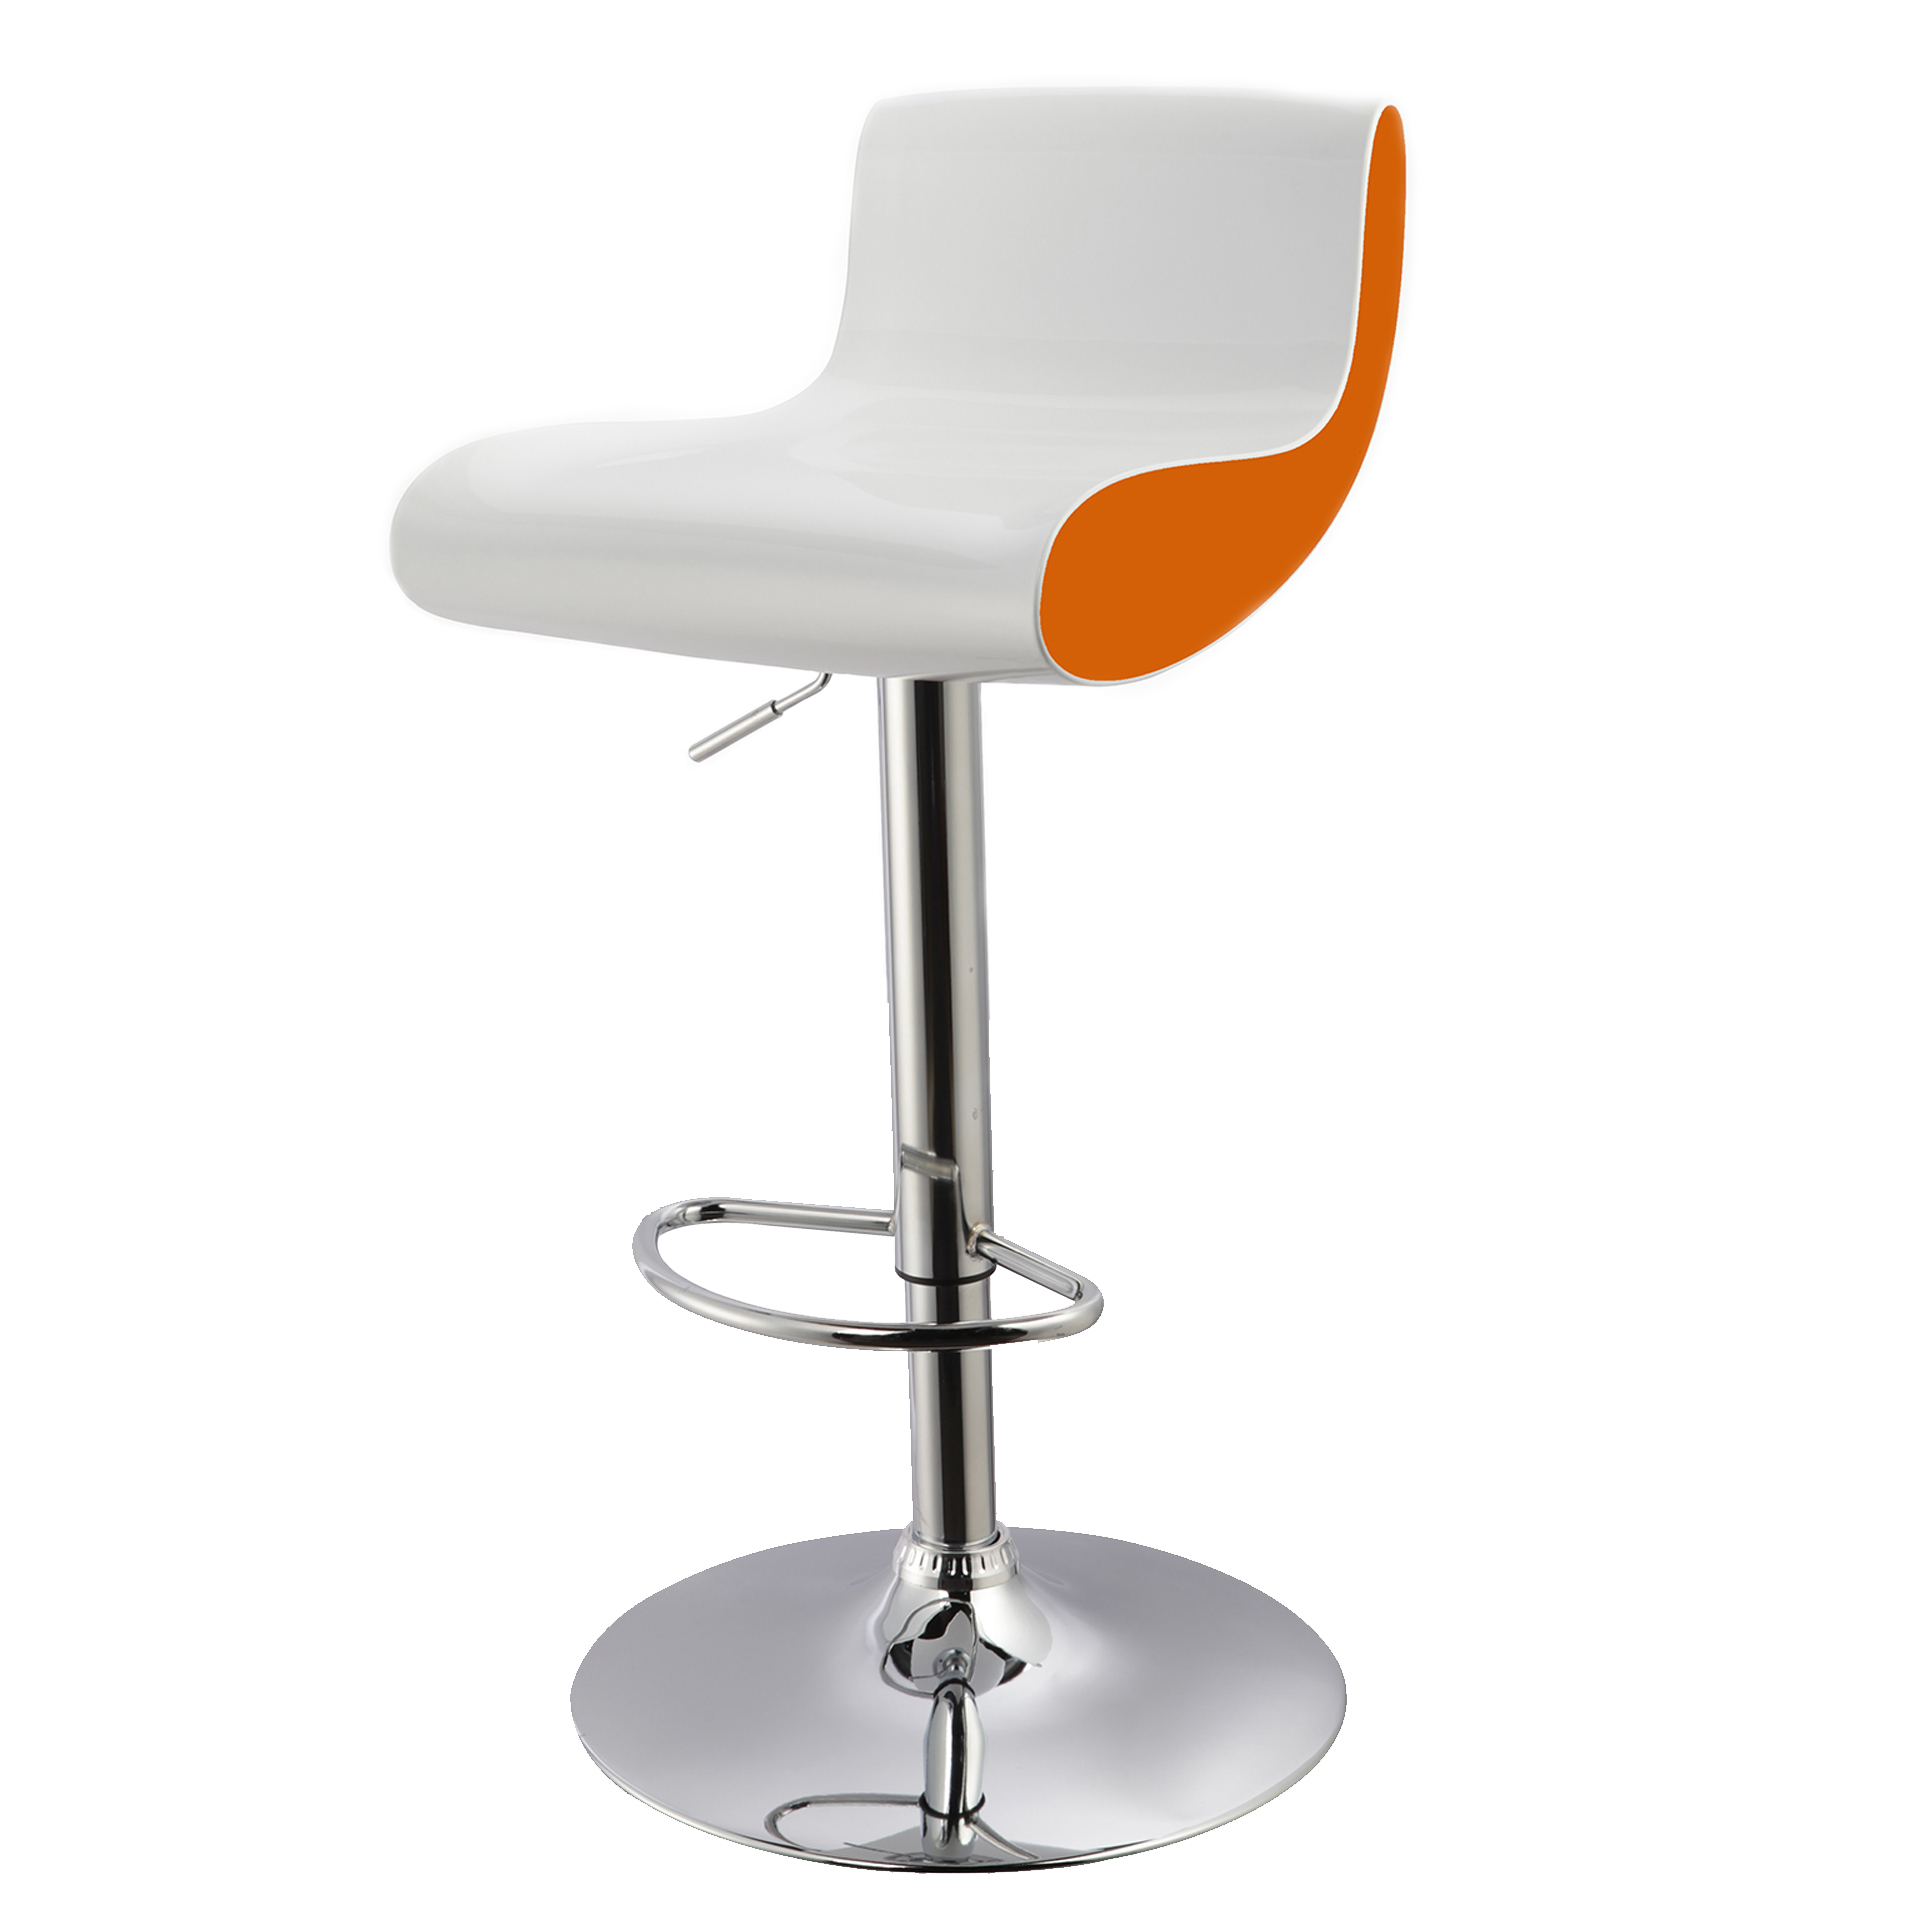 Omid Bar Stool Furniture Store Manila Philippines Urban  : WY 179 WHITEORANGE from www.urbanconcepts.ph size 1920 x 1920 jpeg 274kB